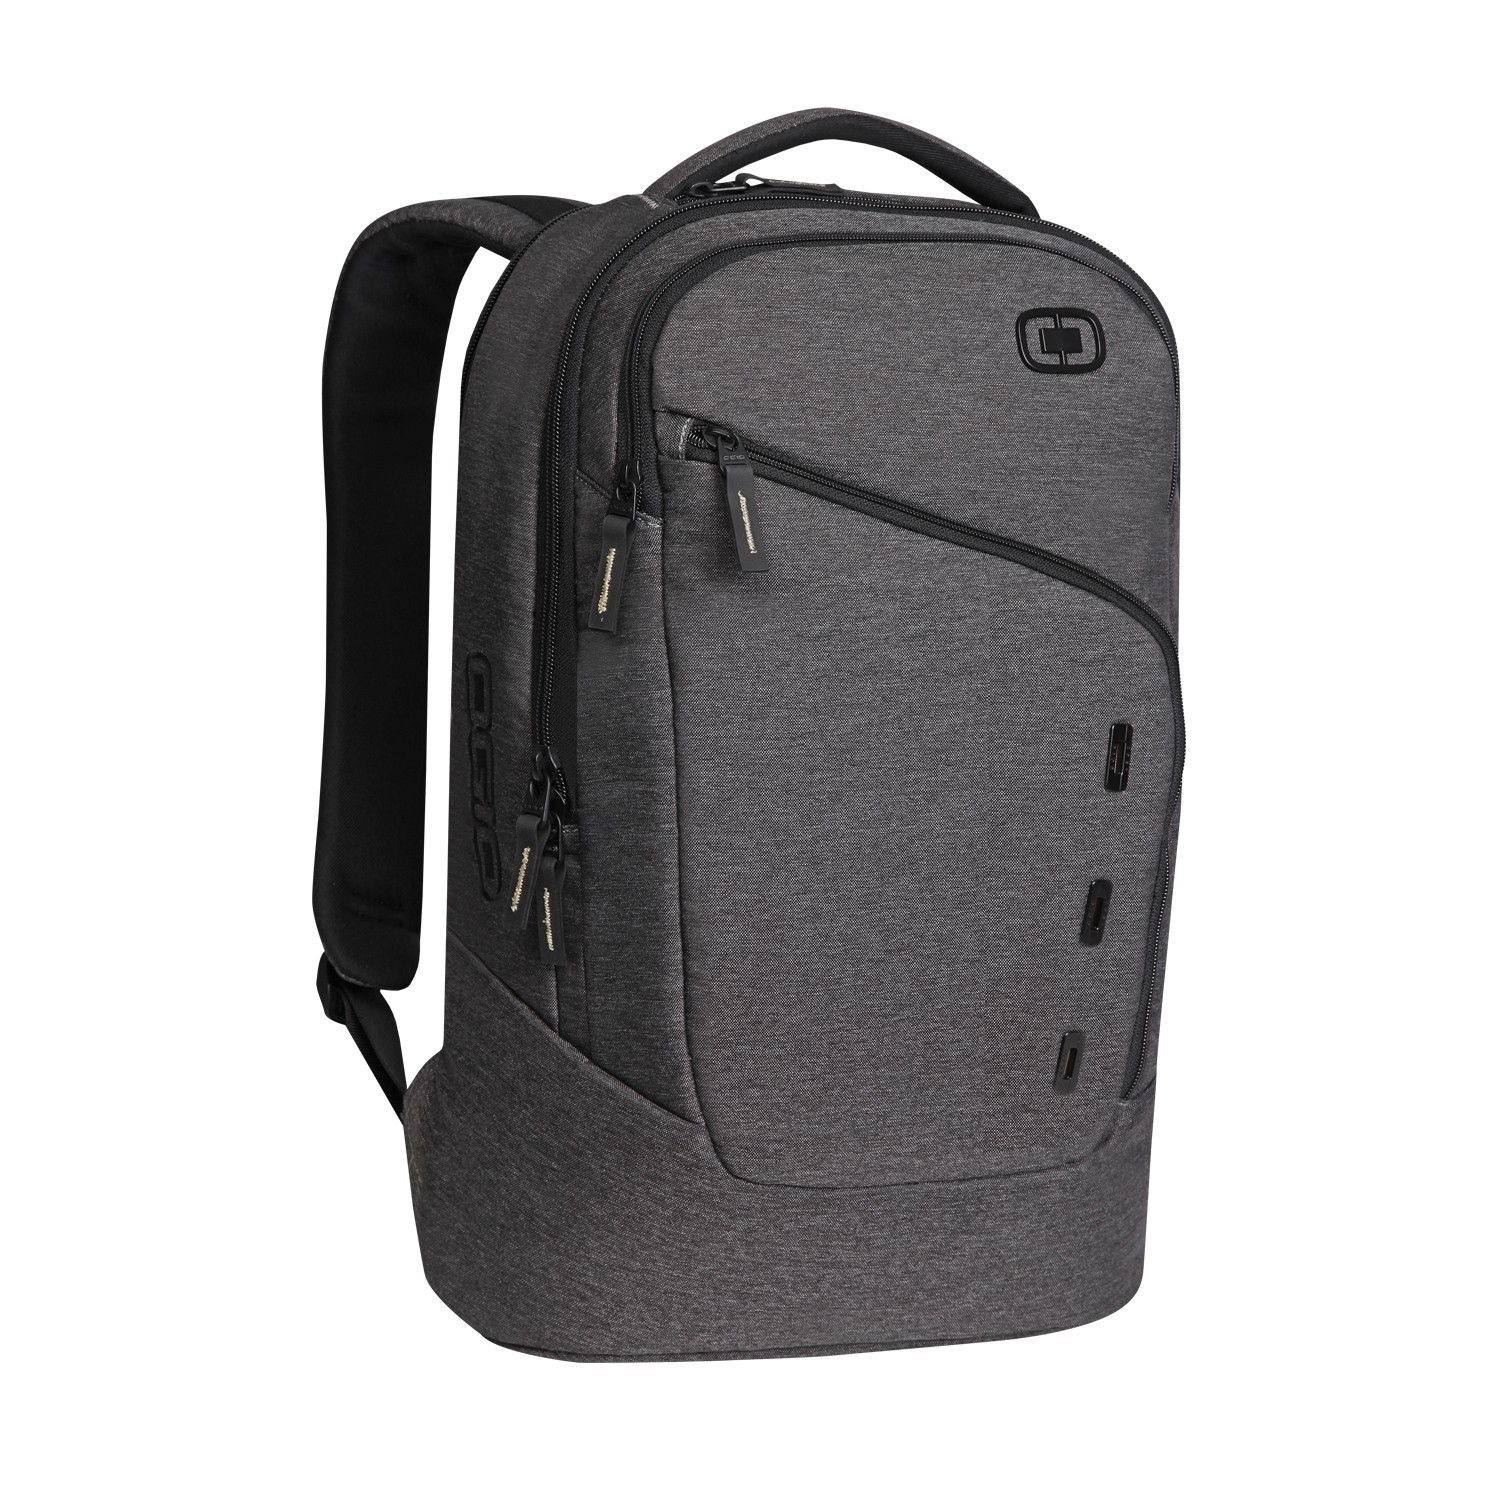 15 In Laptop Backpack vIUqVYsq